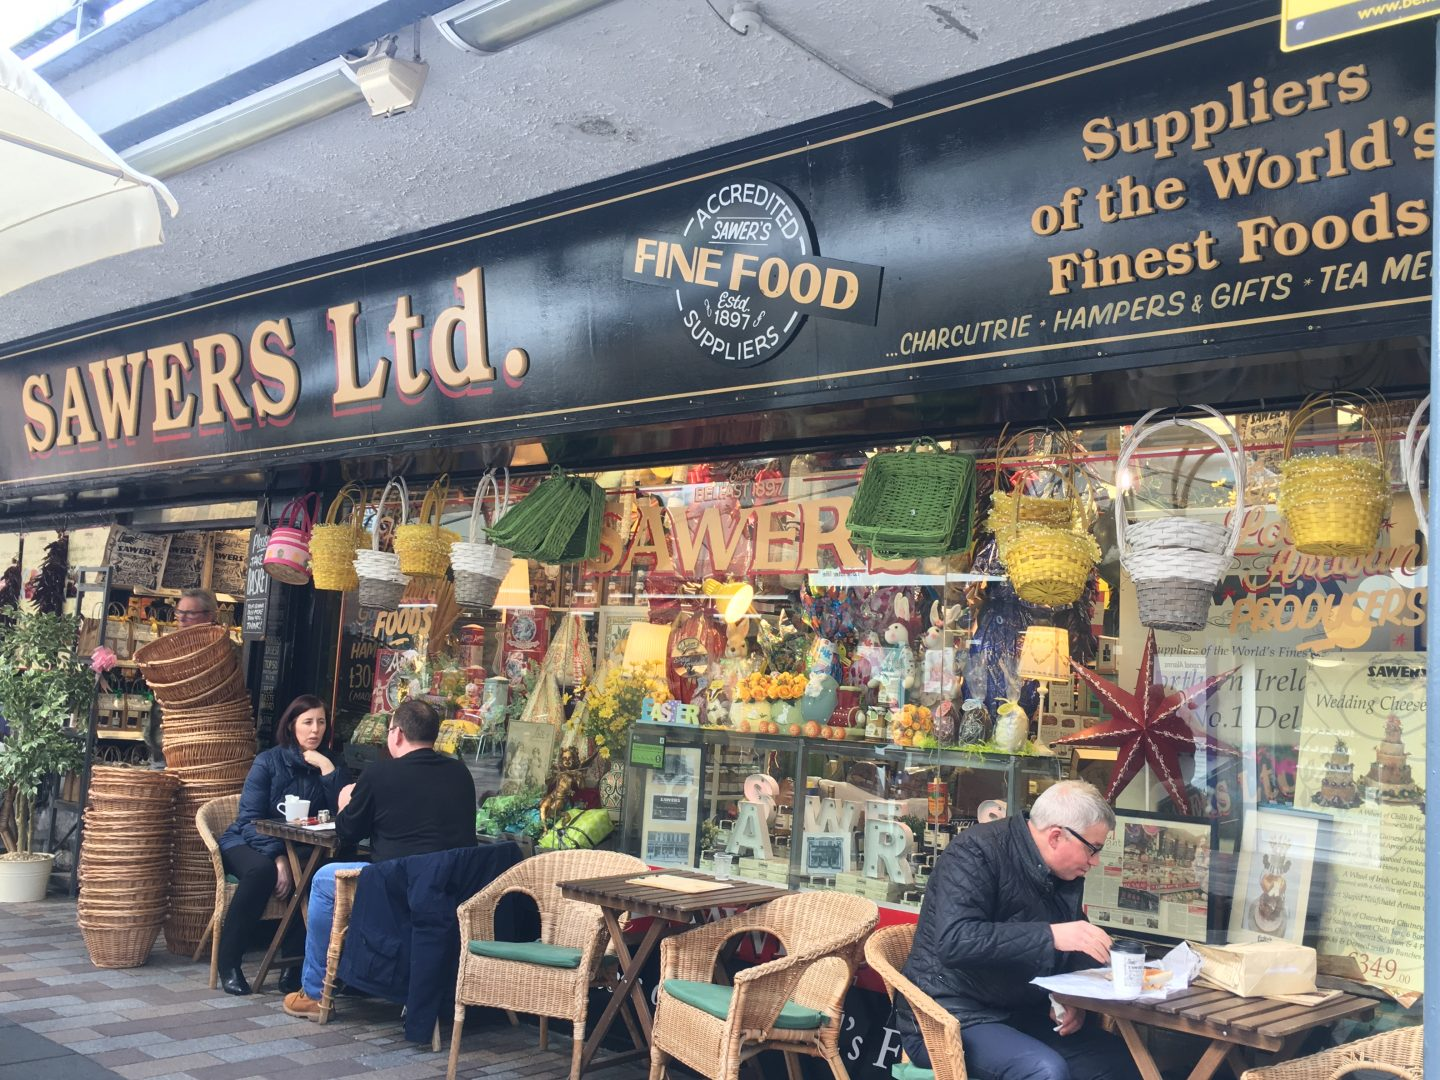 Sawers - one of the best places to eat in Belfast